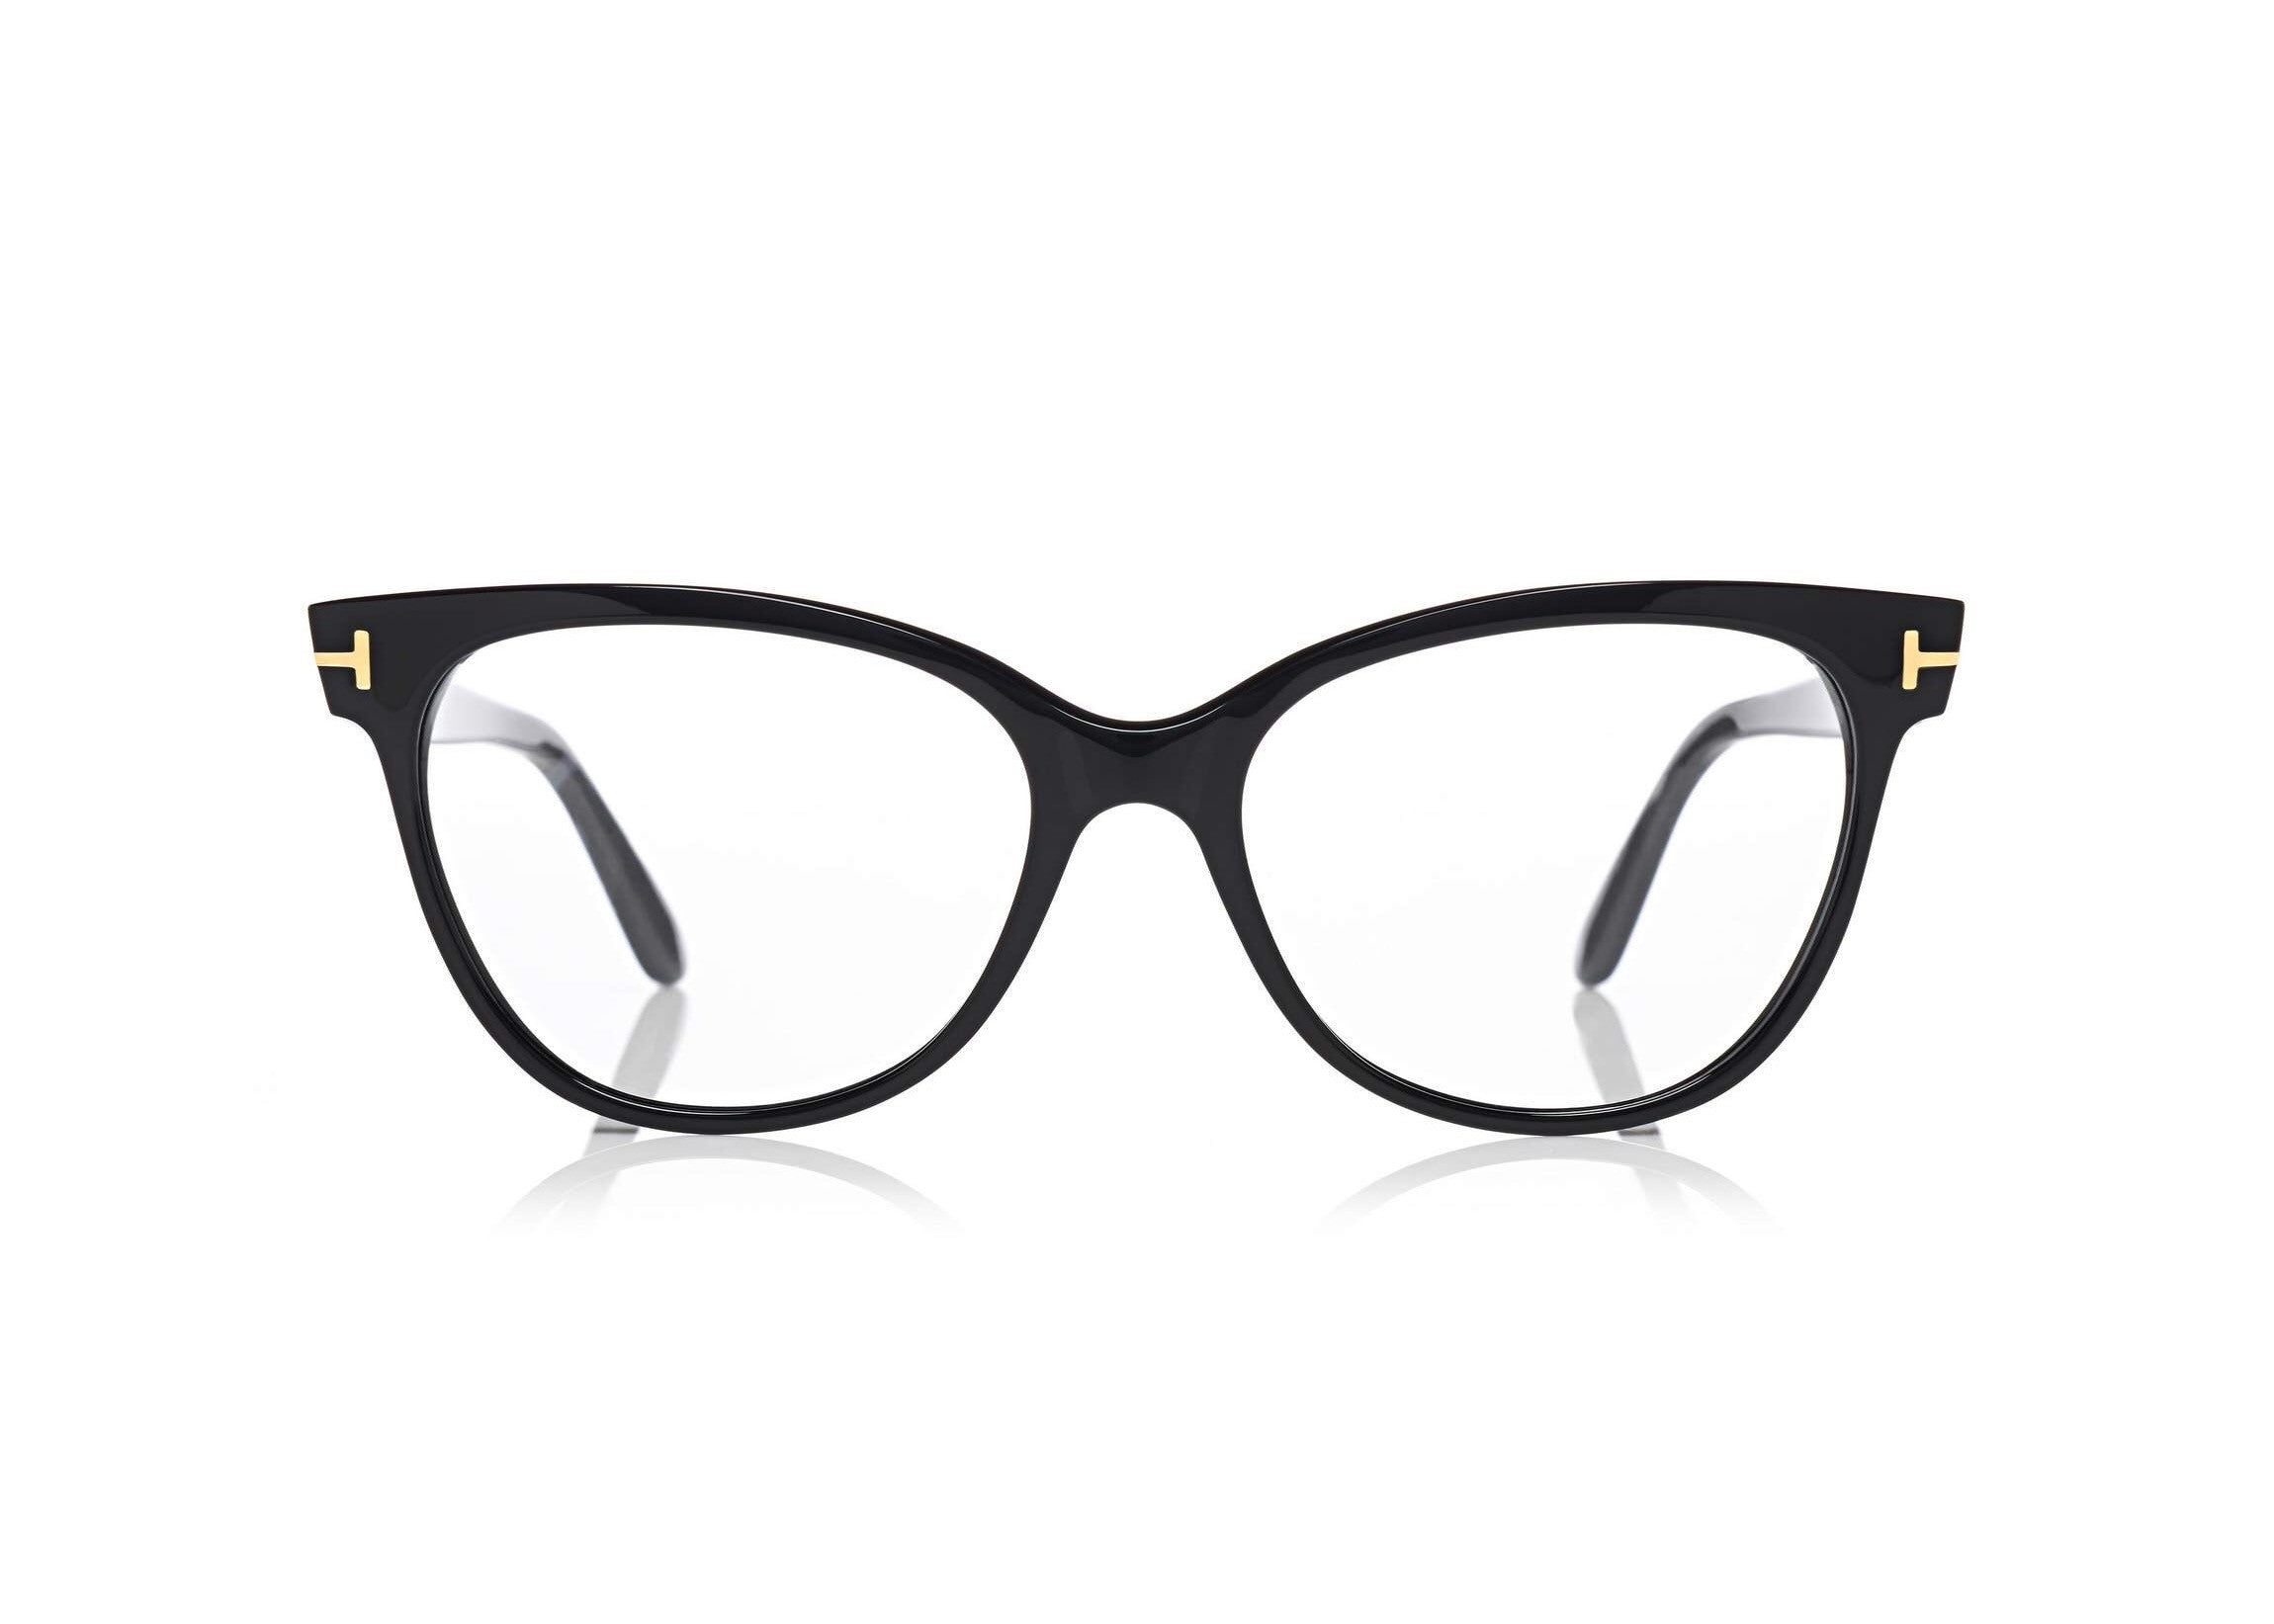 144b5d1a364 Tom-Ford-5291-Womens-Black-Frame-Optical-Glasses-